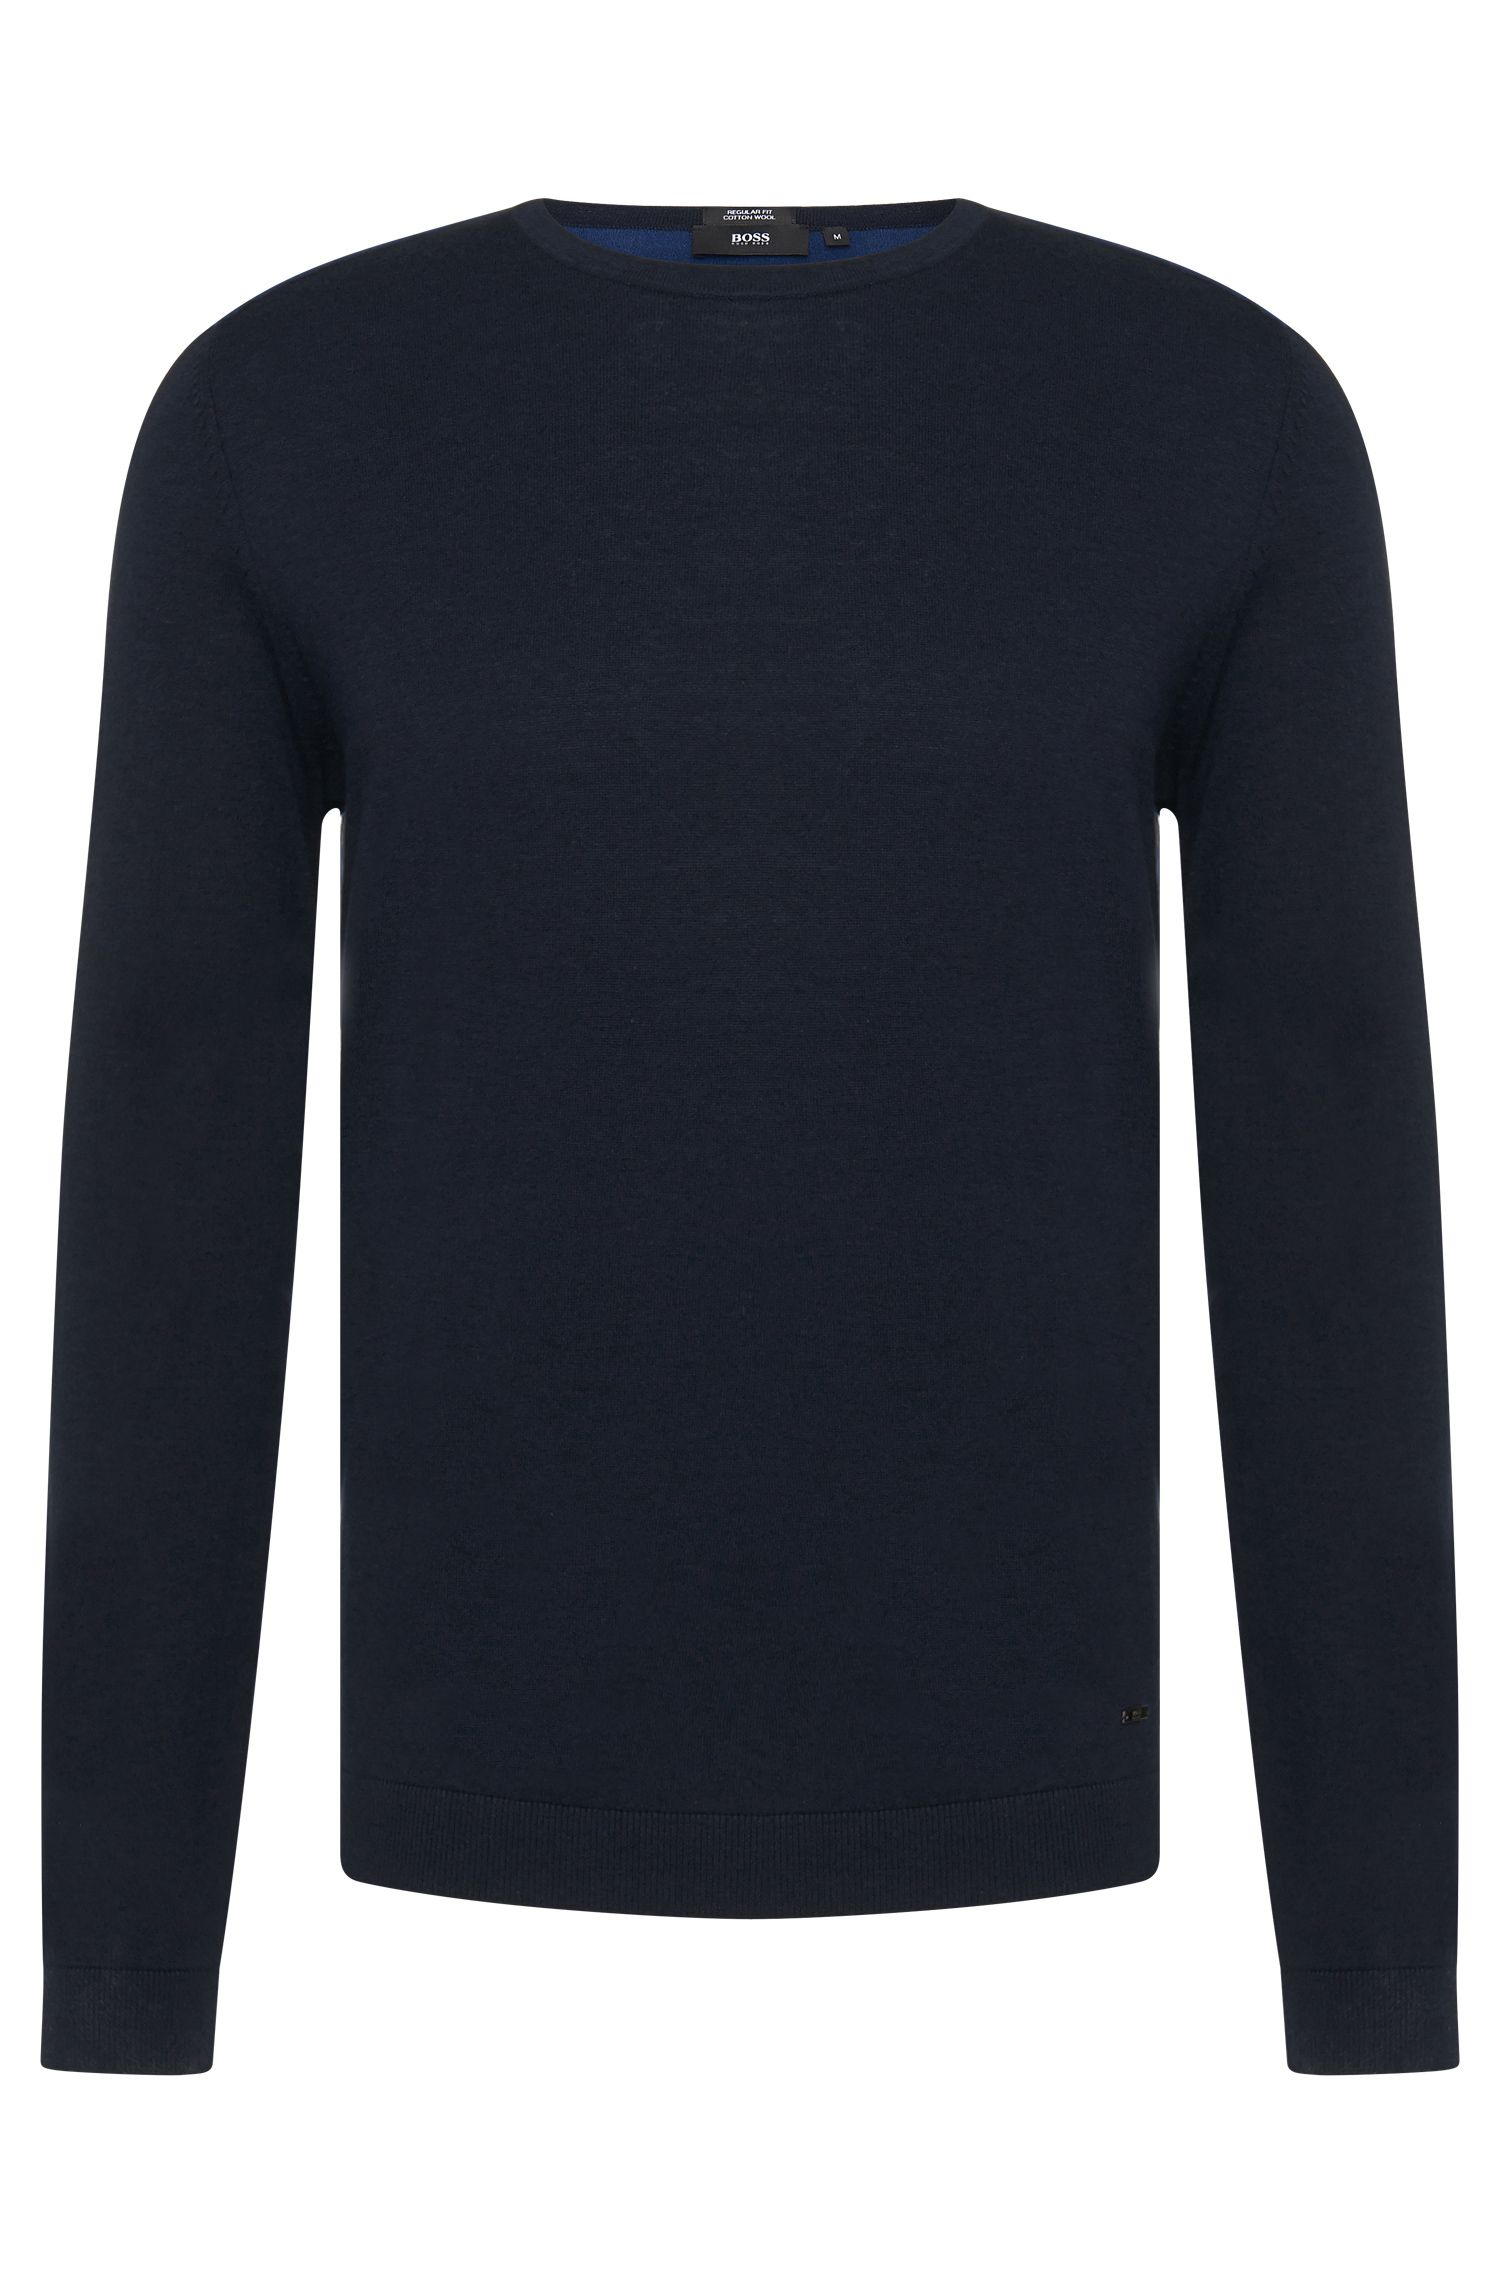 'Bocci' | Virgin Wool Cotton Colorblocked Sweater